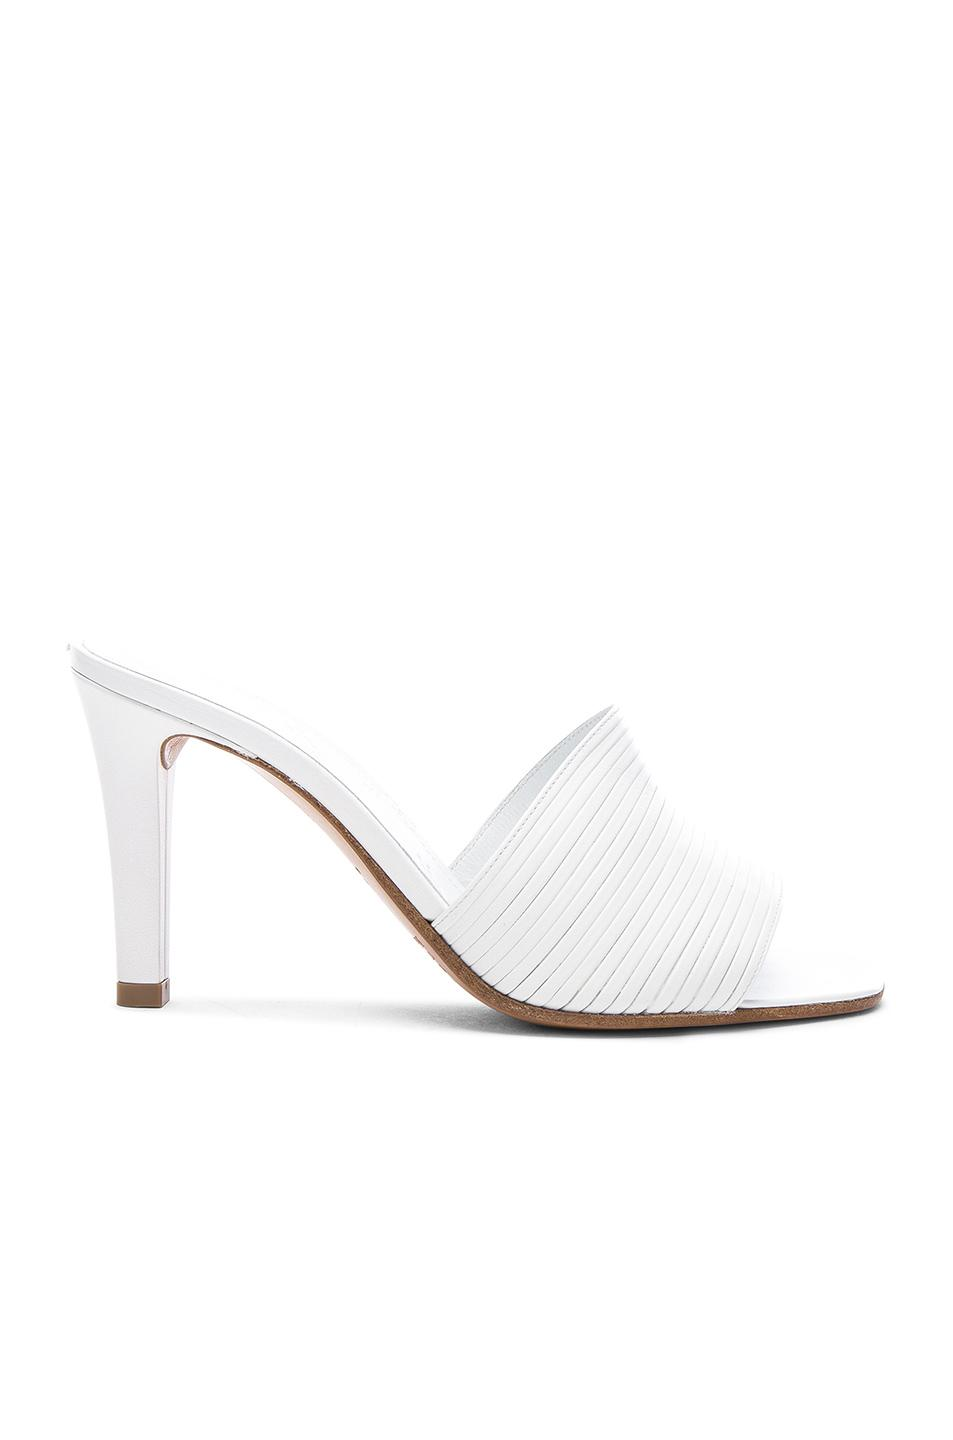 Maison Margiela High Heel Mules In White